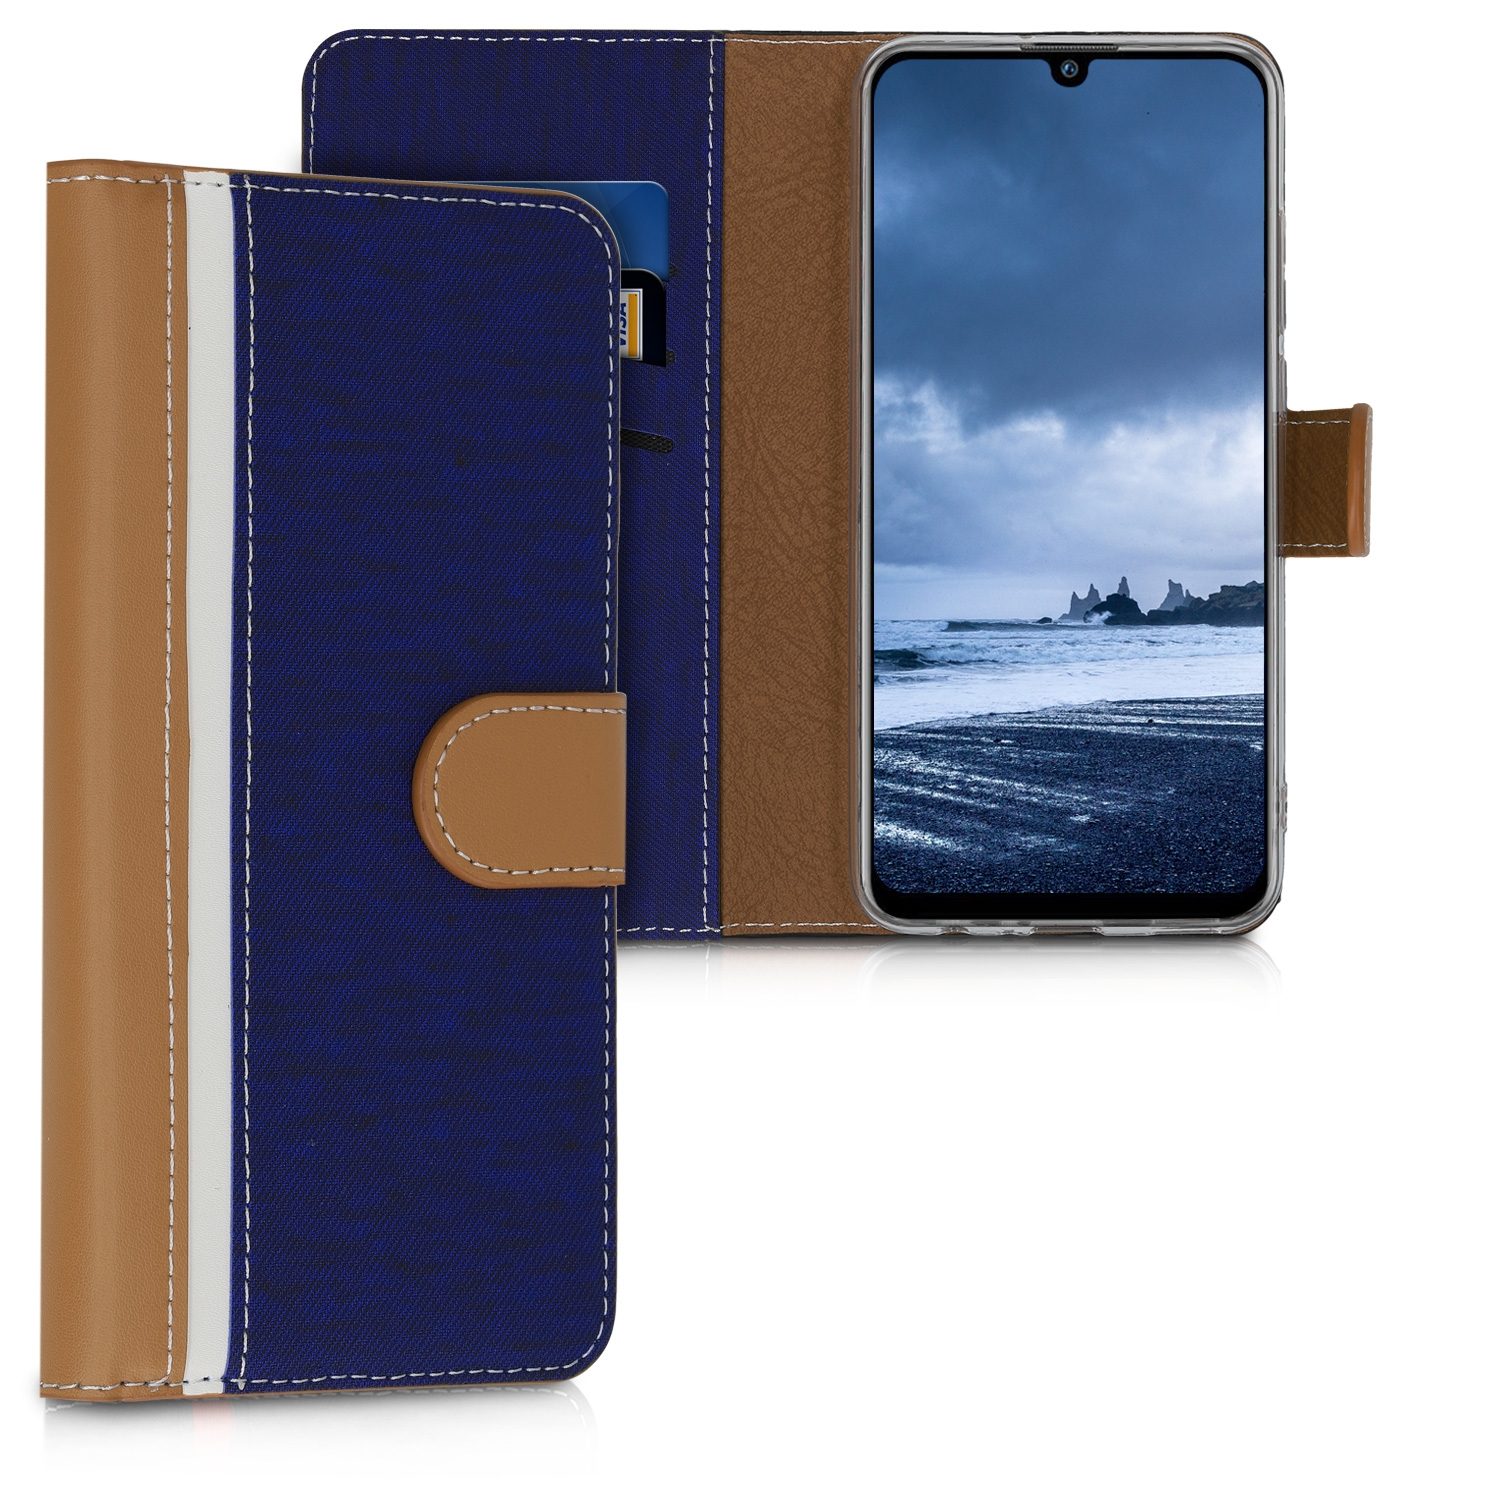 KW Θήκη - Πορτοφόλι Huawei P Smart (2019) - Dark Blue / Brown / White (48420.02)